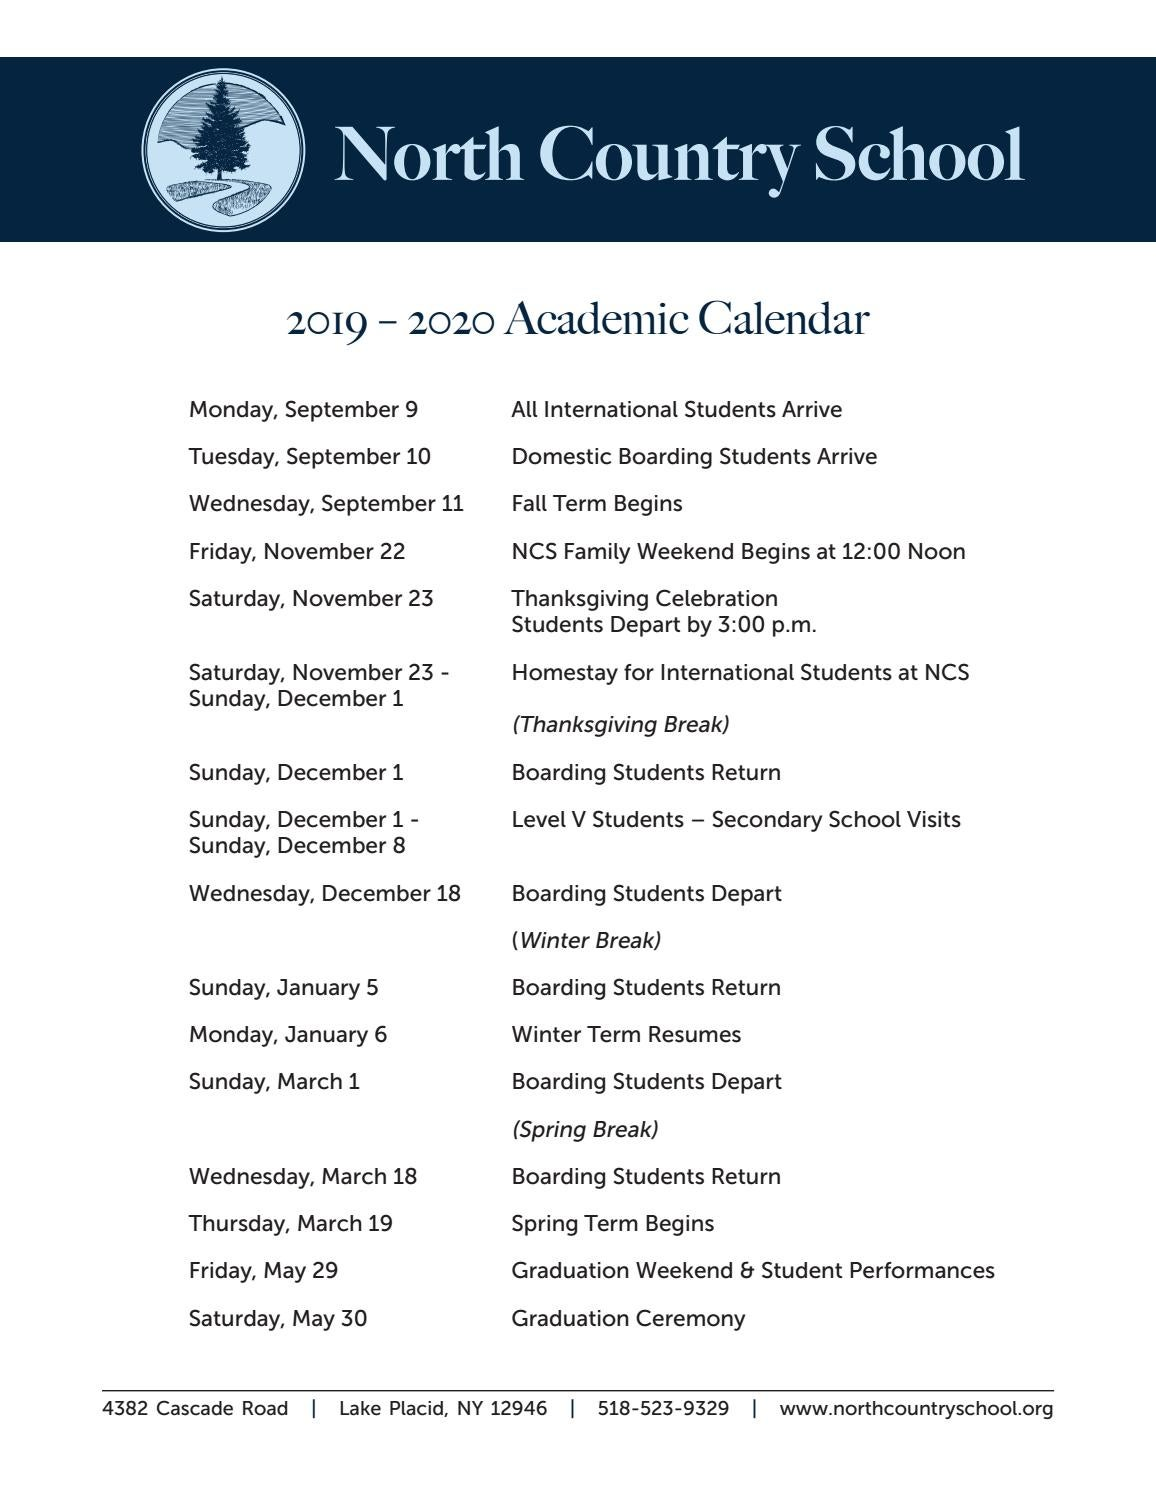 Spring 2020 Academic Calendar.North Country School 2019 2020 Academic Calendar By North Country